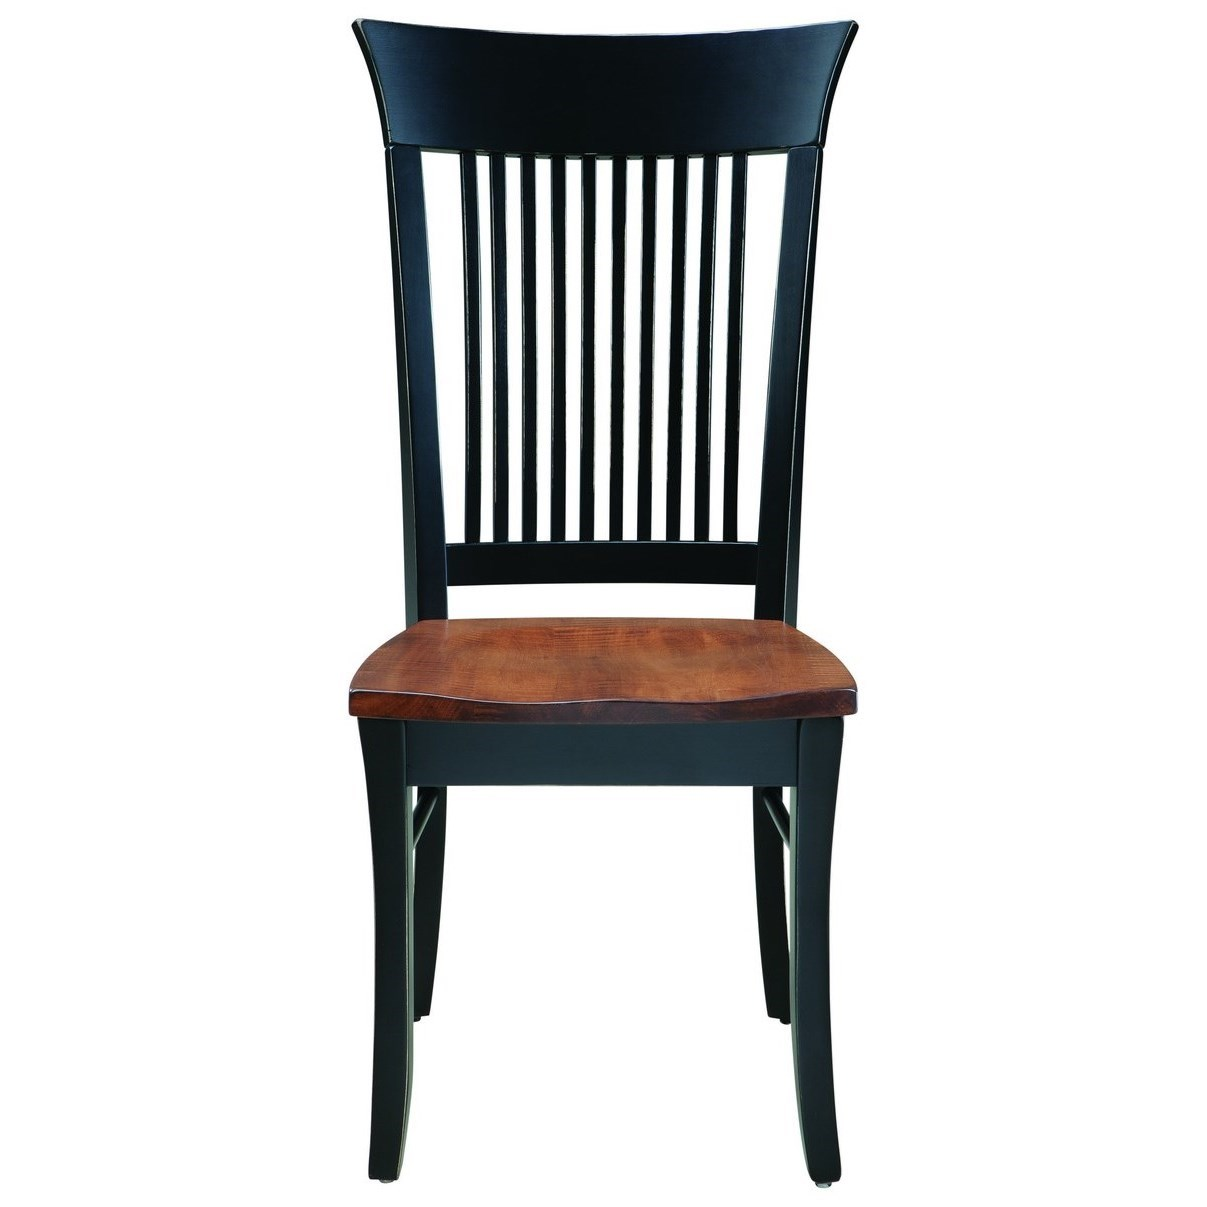 Expressions Contempo Side Chair by Palettes by Winesburg at Dinette Depot